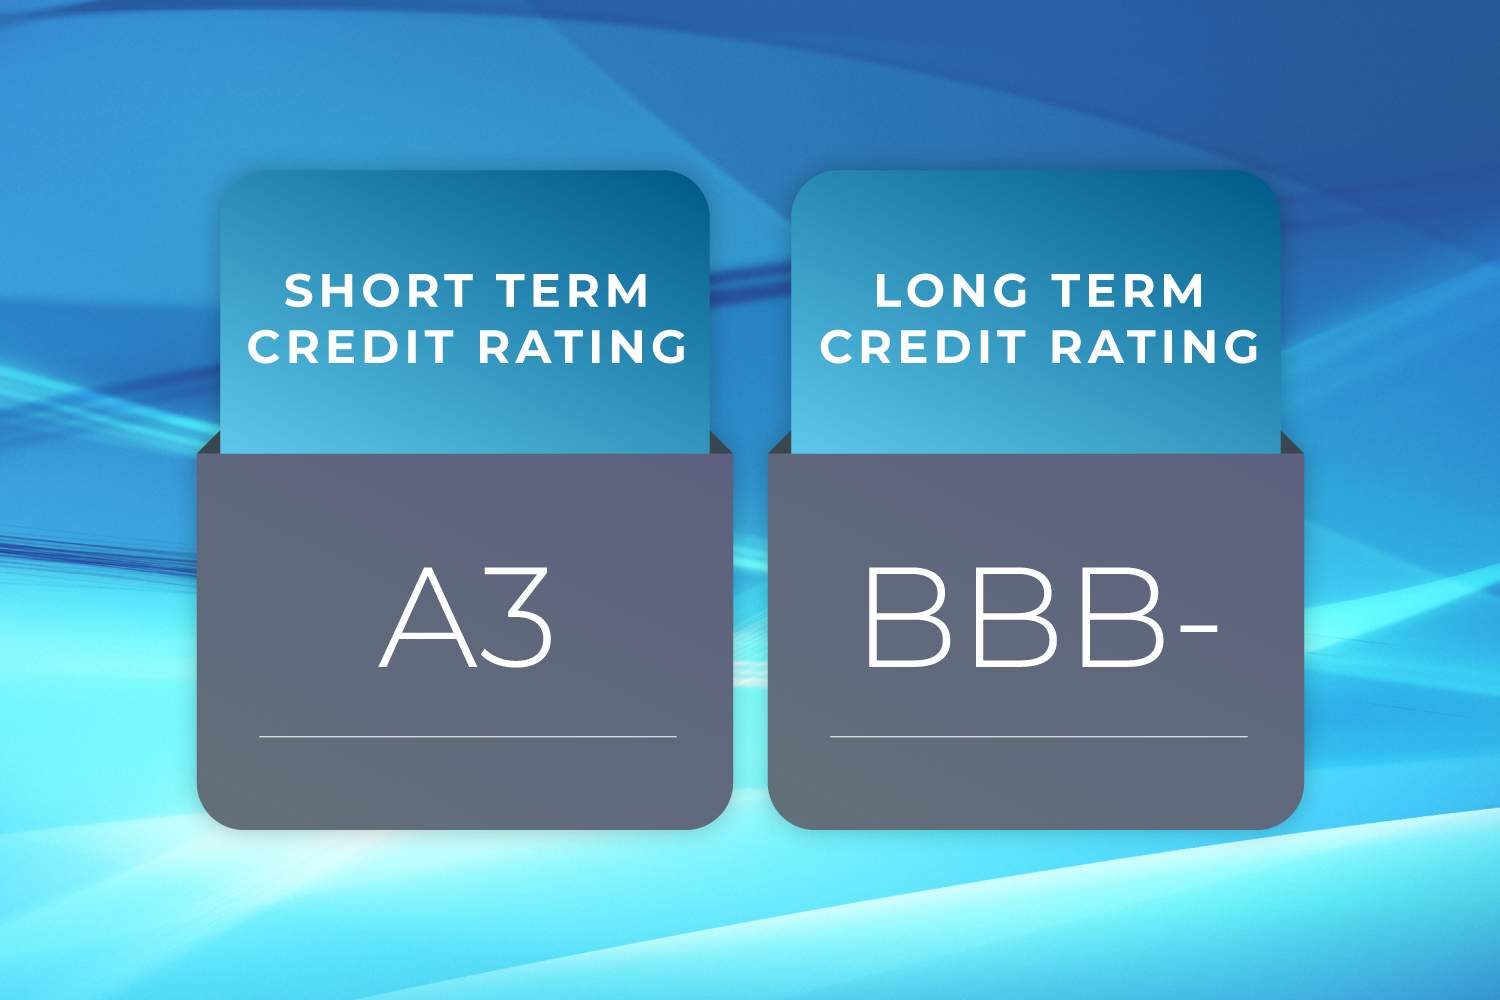 Finance House's Investment Grade Credit Ratings with Stable Outlook- Reaffirmed